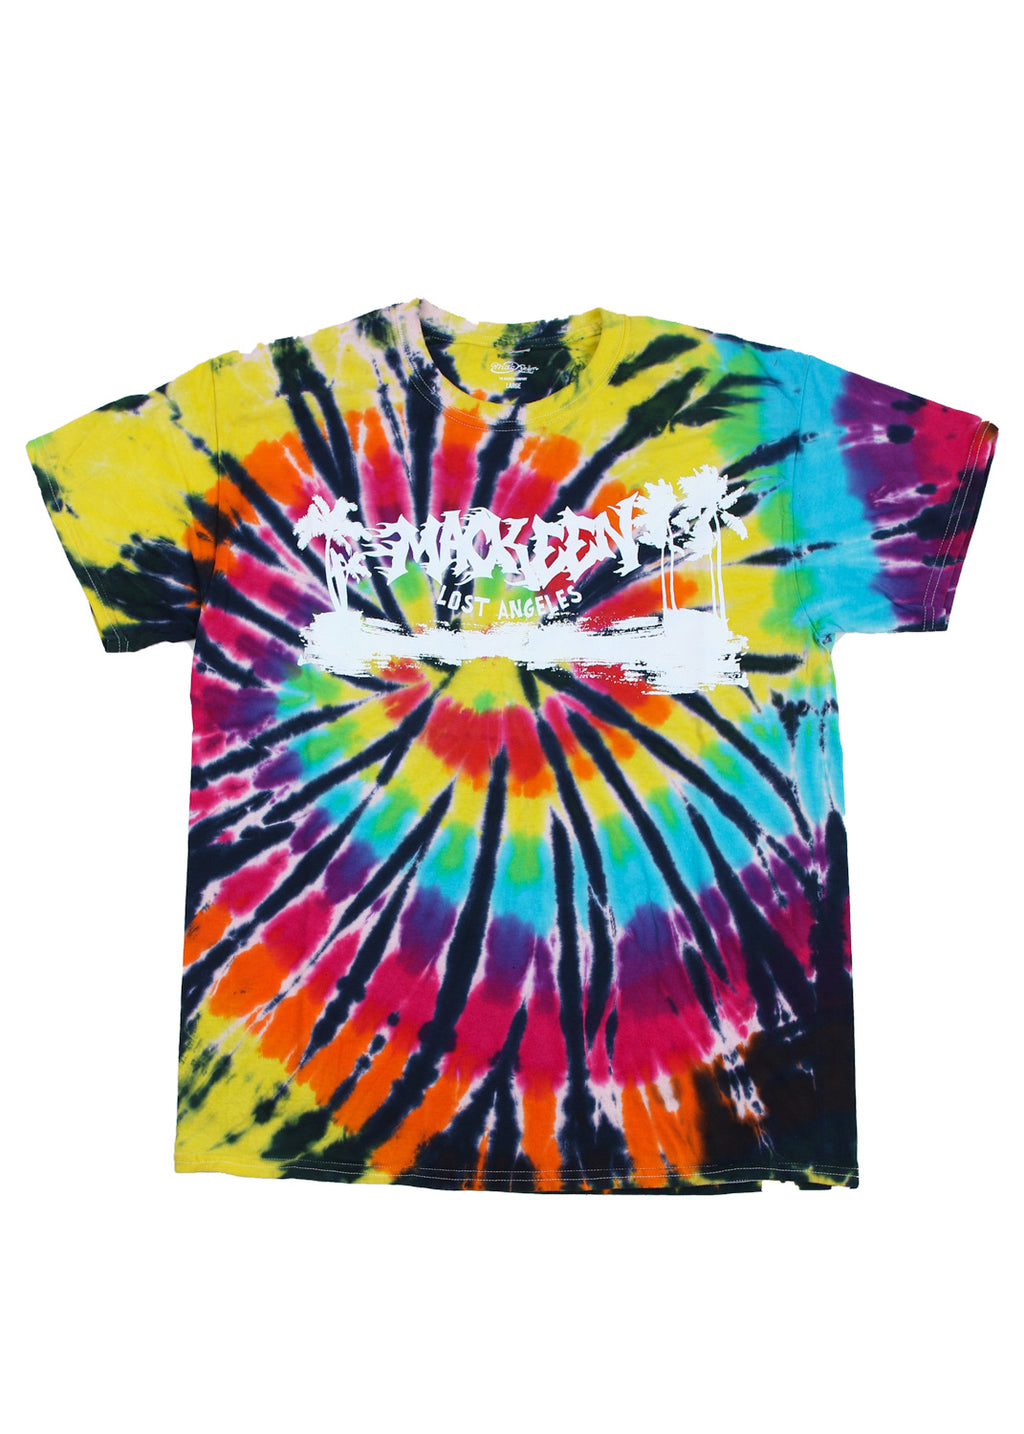 PALMS TIE DYE TEE MULTI COLOR